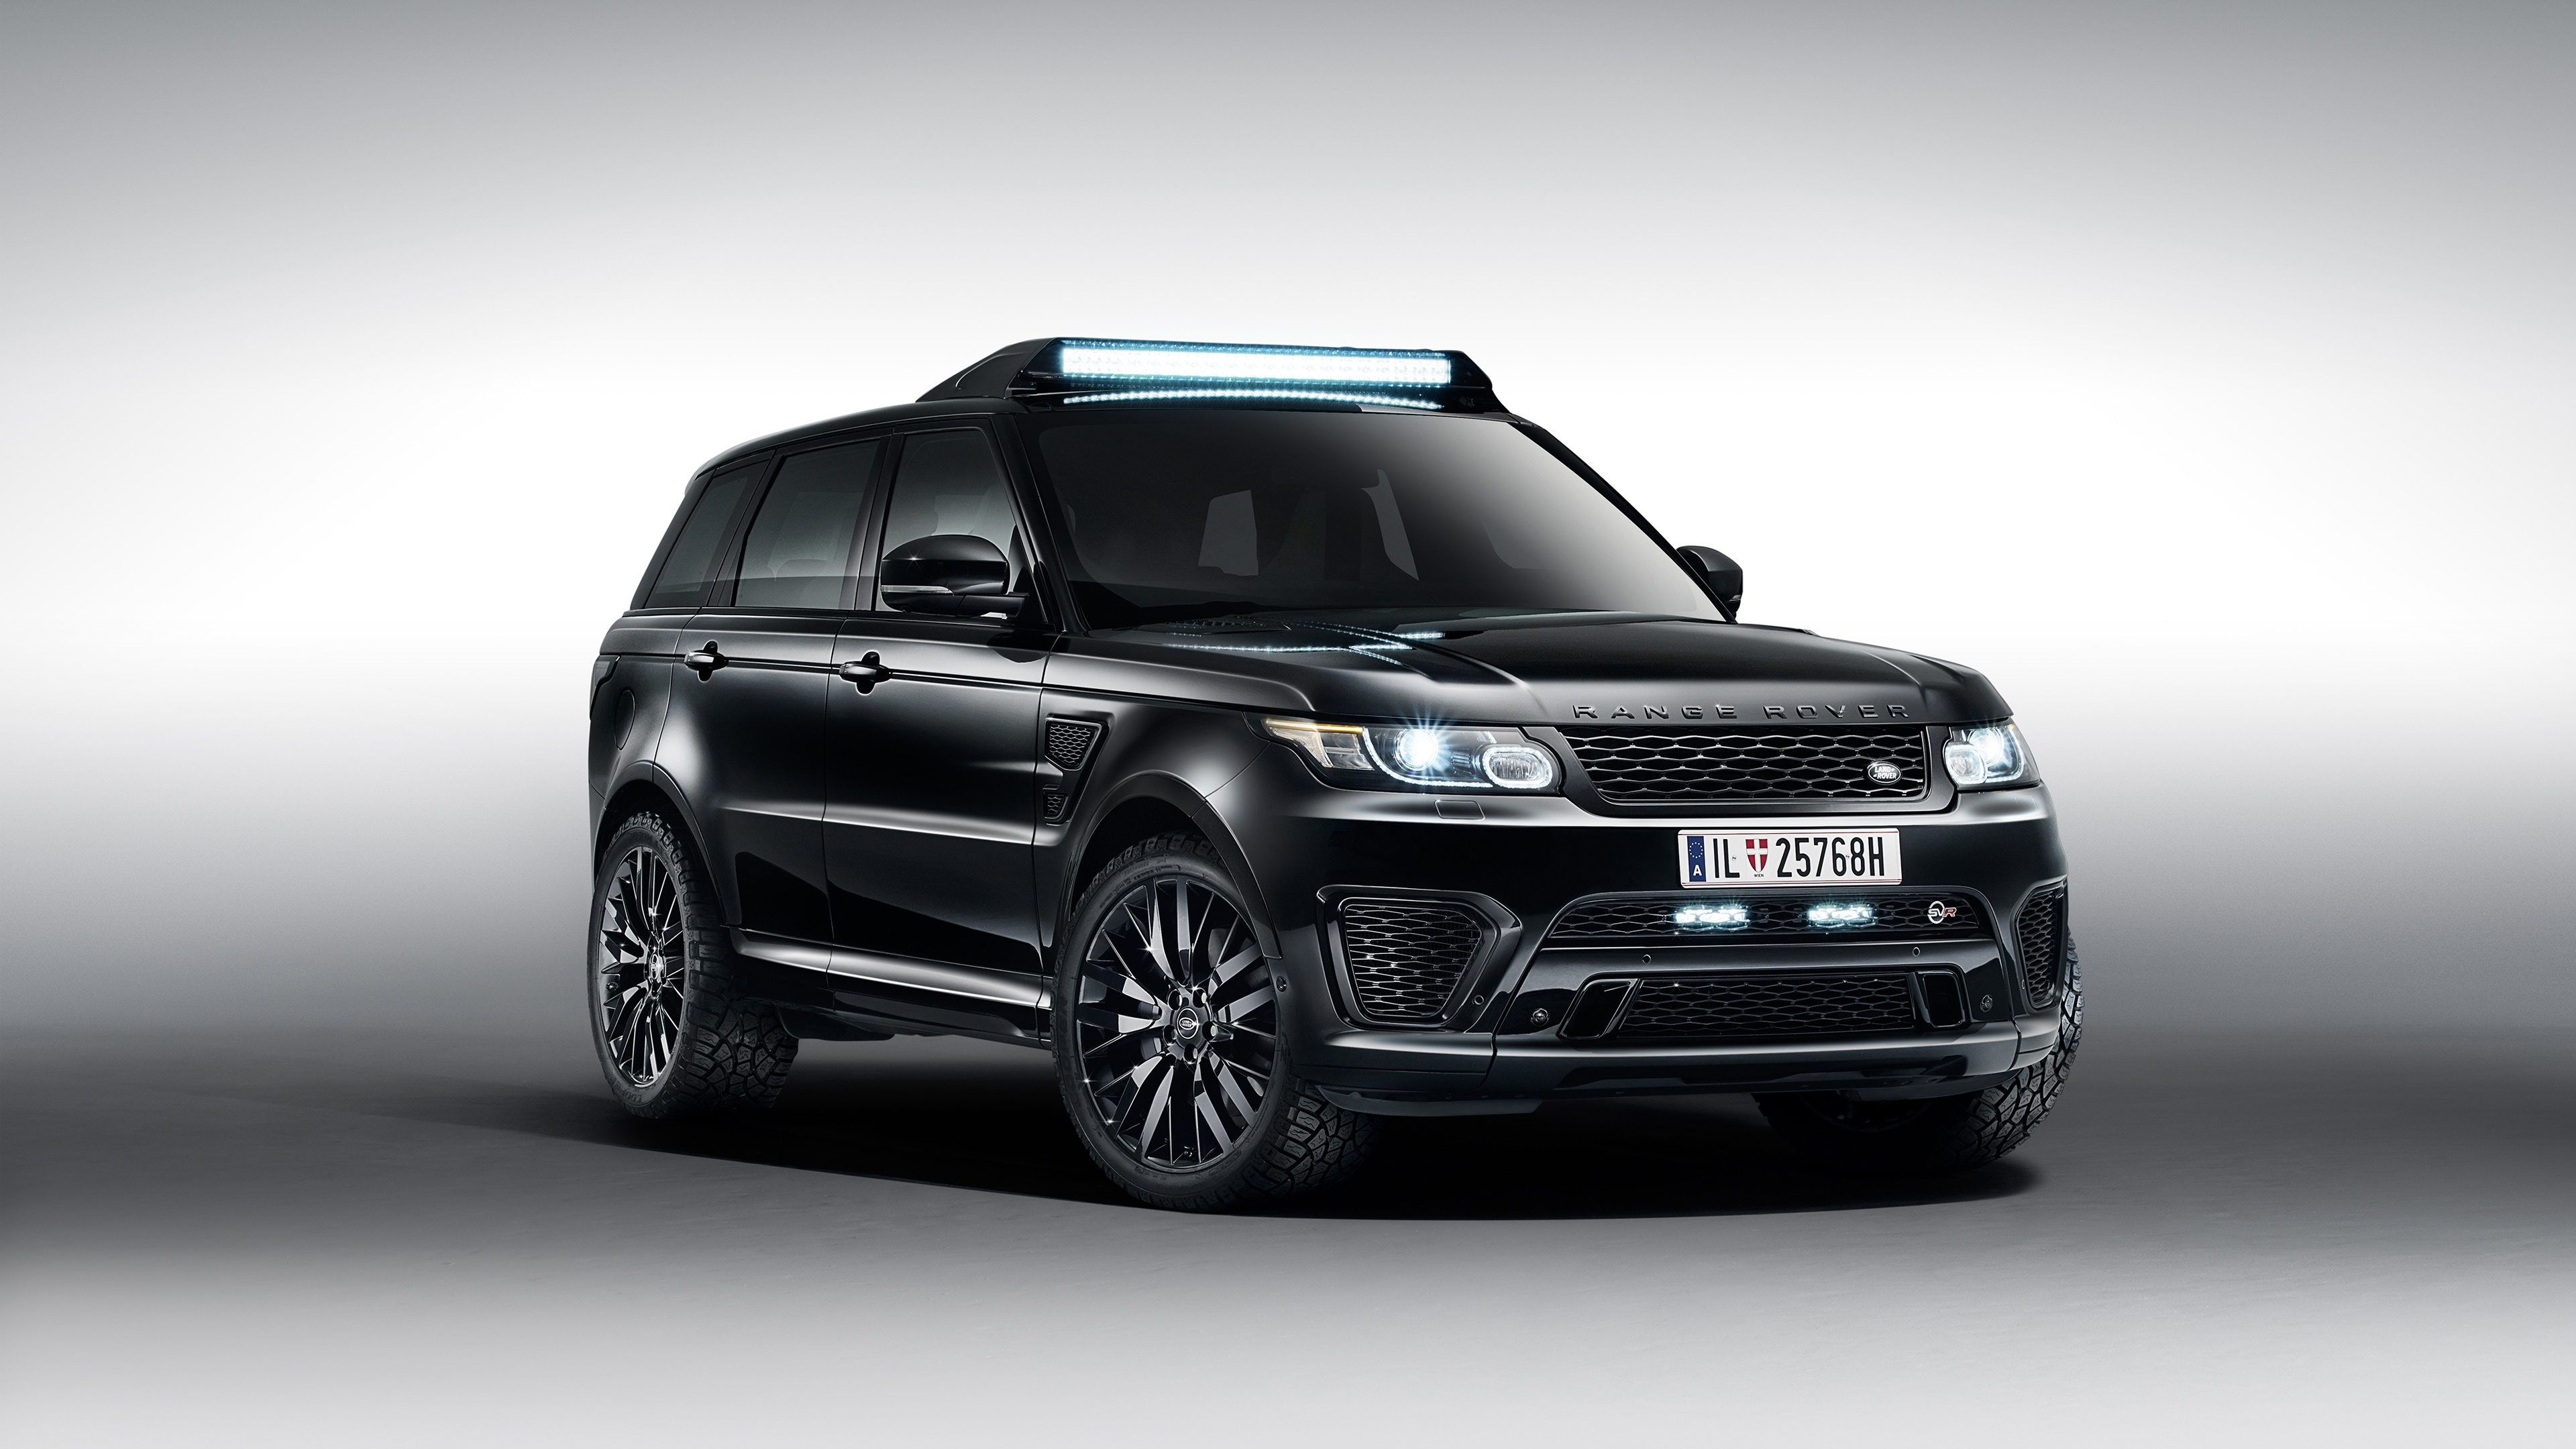 2015 Range Rover Sport Wallpaper HD Car Wallpapers 3840x2160